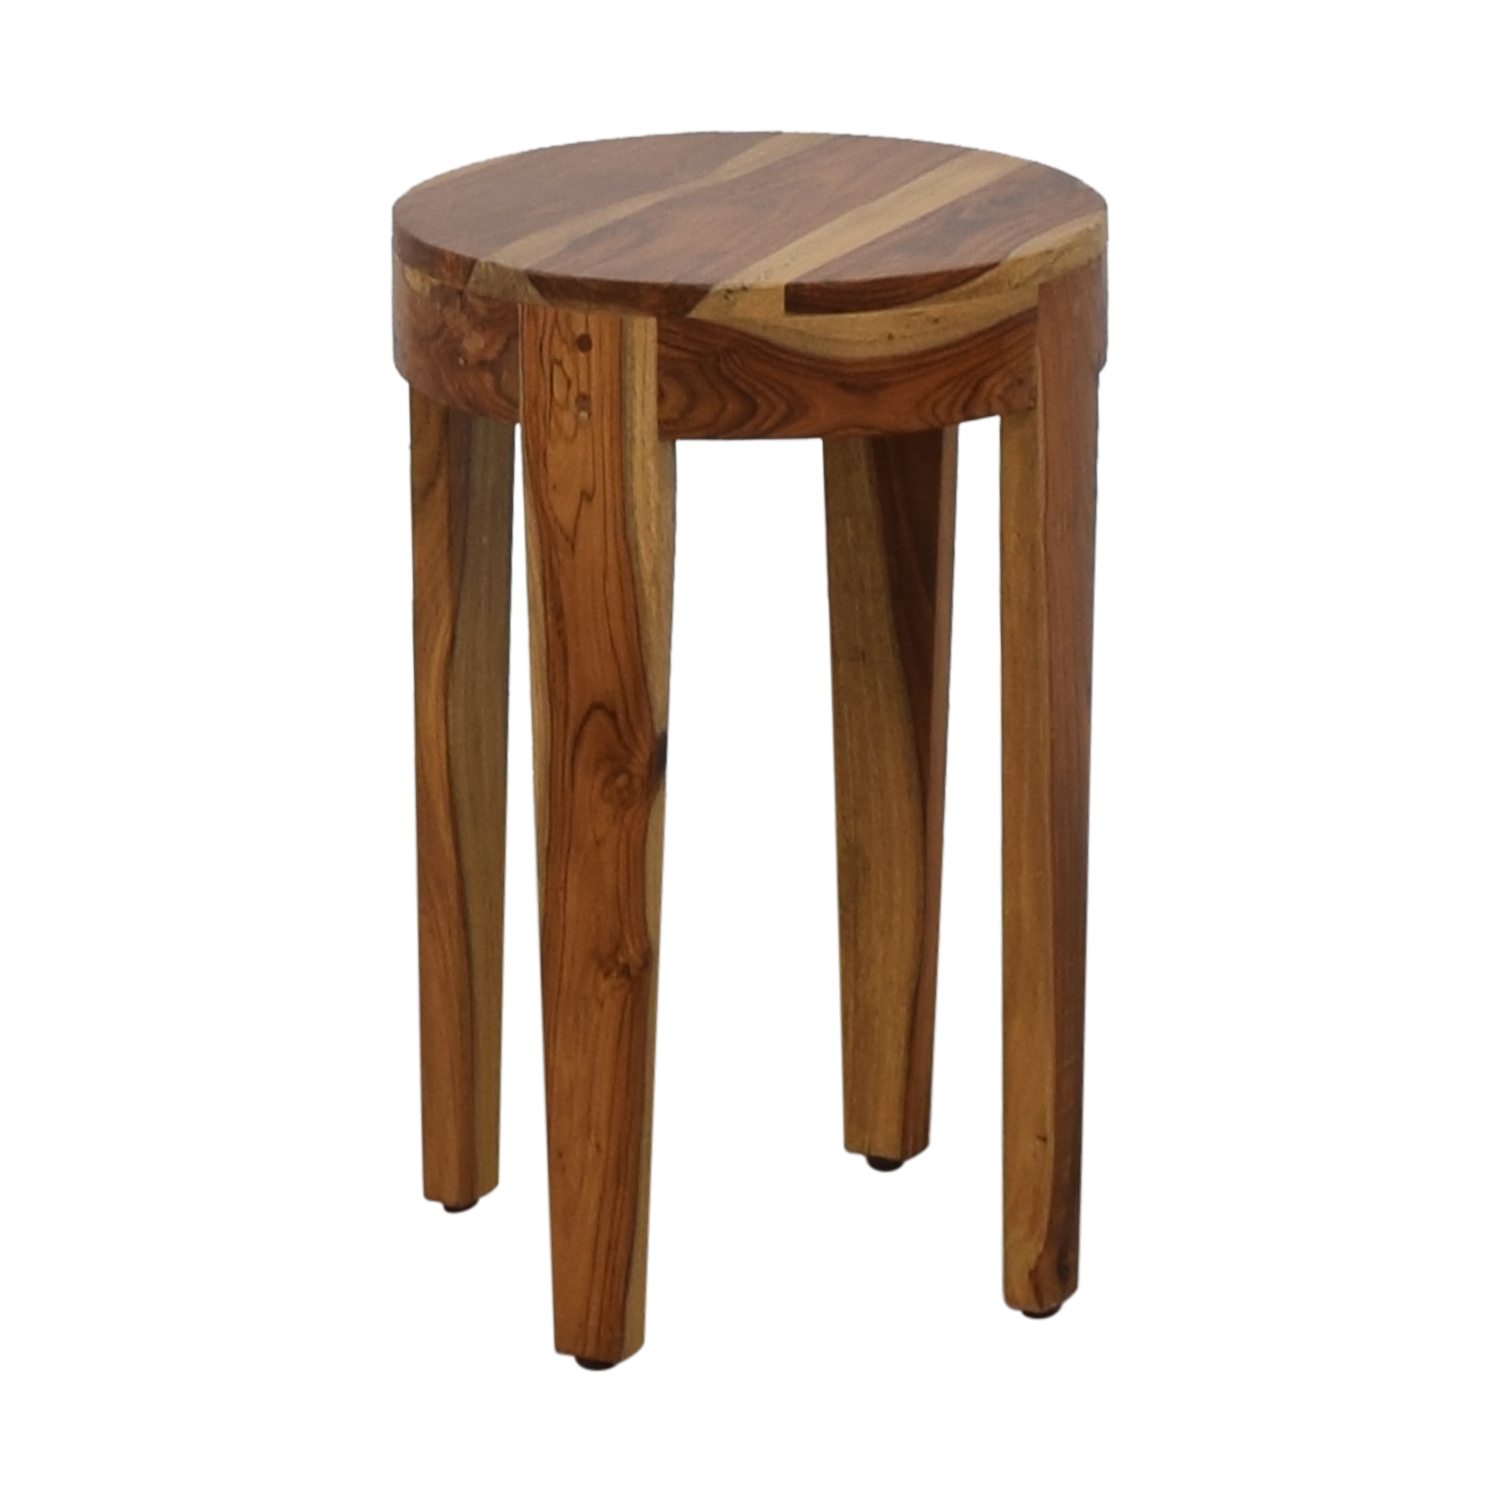 Target Target Small Round Table for sale